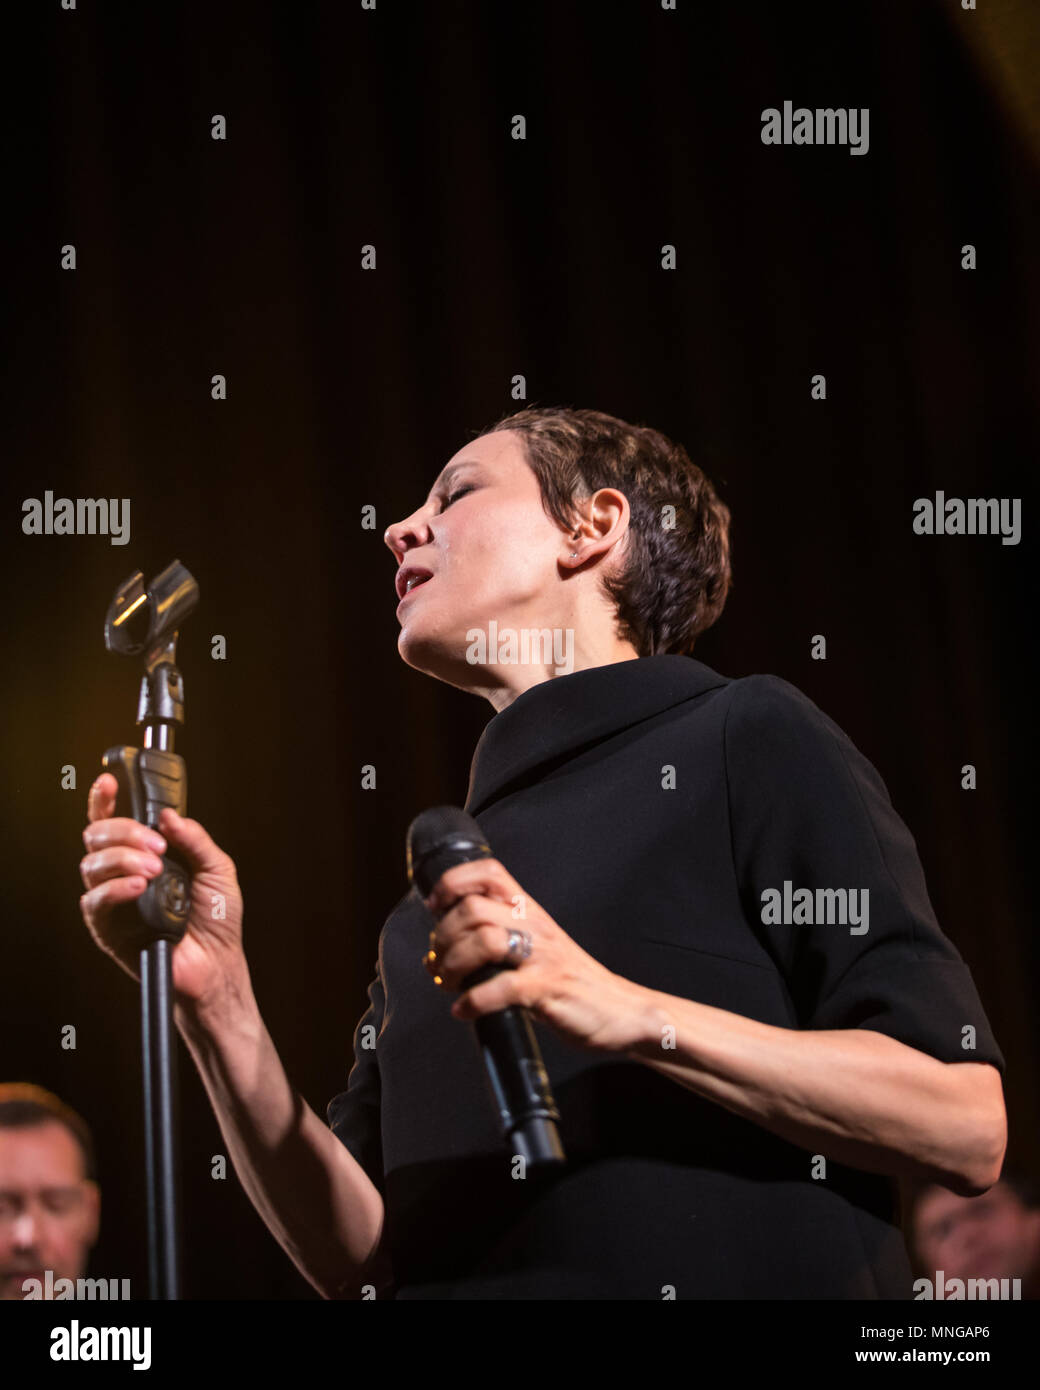 Cracow, Poland - April 26, 2018: The performance of the American jazz vocalist Stacey Kent with her accompanying quartet on the Kijow.Centre stage in  - Stock Image